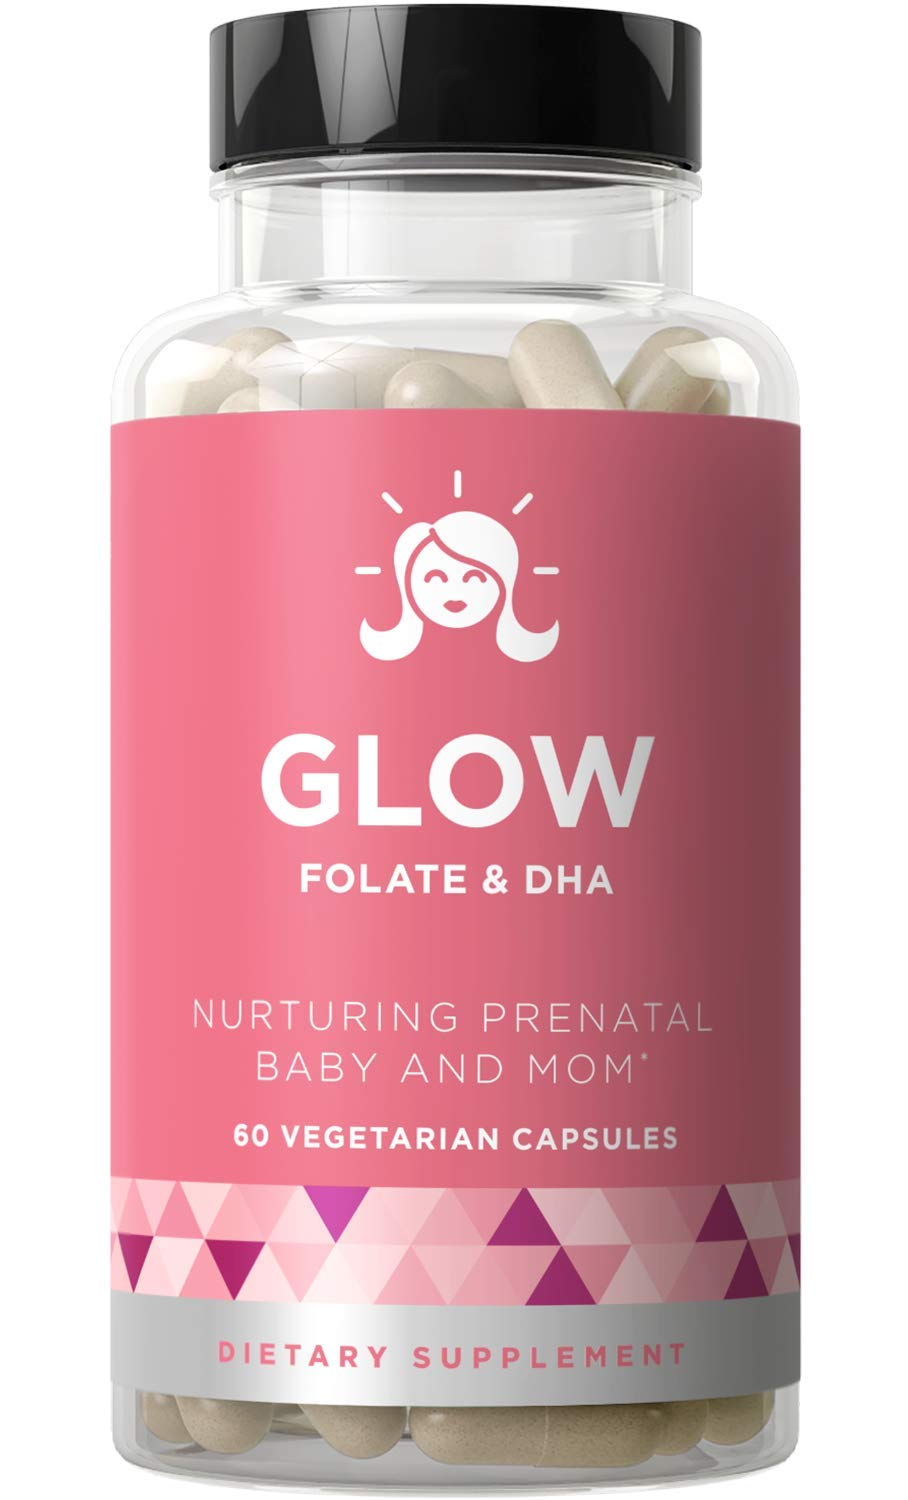 Glow Prenatal Vitamins + Folate & DHA - Nurturing Pregnancy Multivitamin for Healthy Baby and Mom - Folic Acid, Ginger, Zinc, Iron - 60 Mini Vegetarian Soft Capsules by Eu Natural